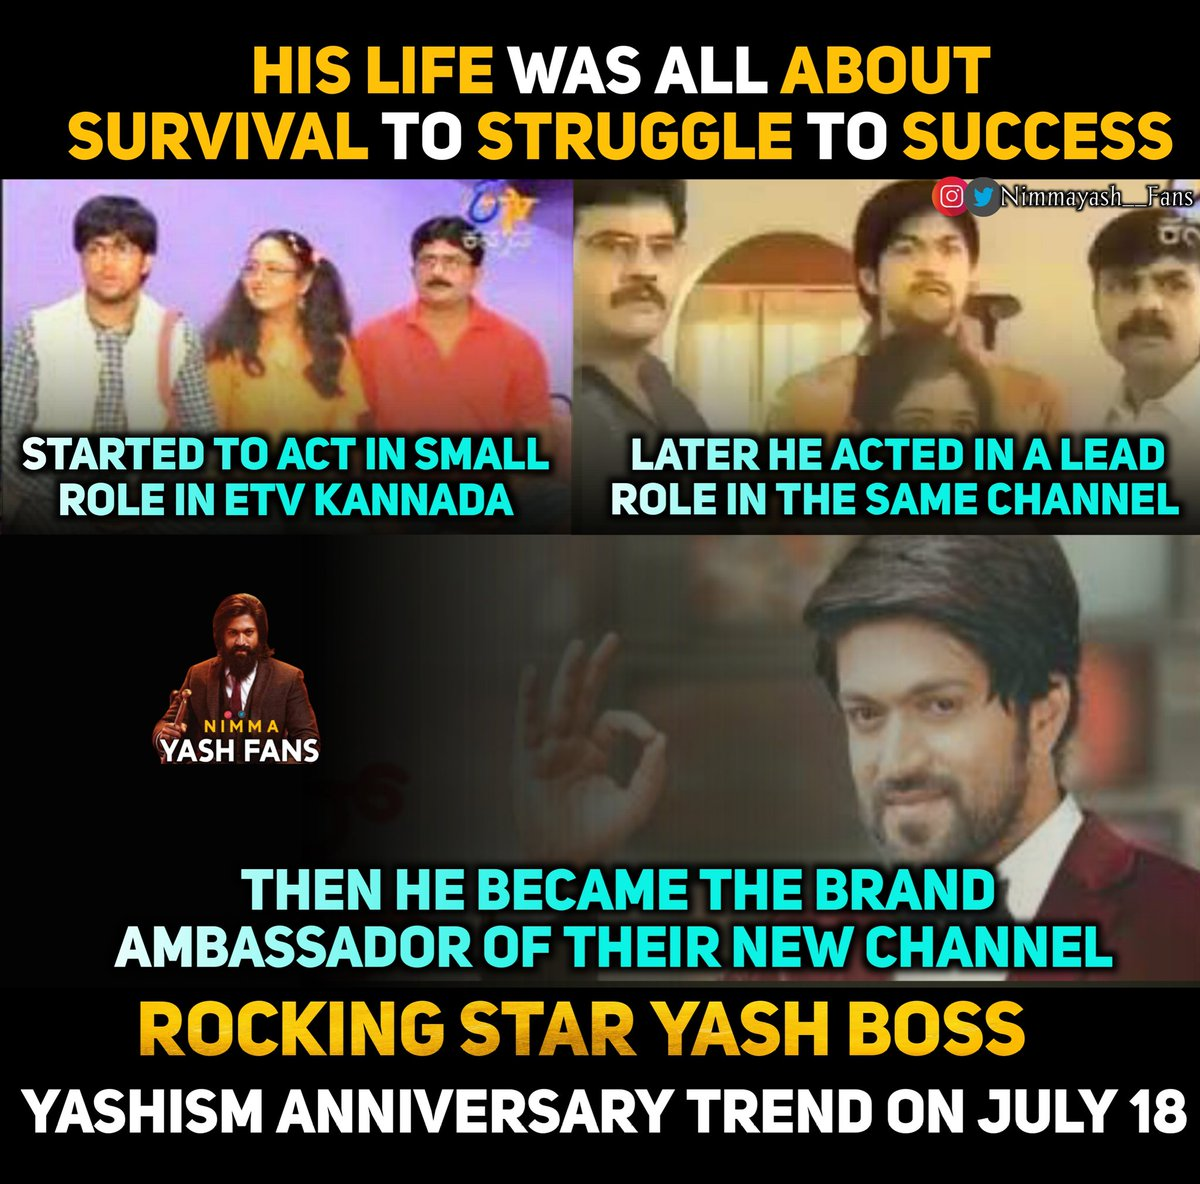 4 Days To Go For #yashismanniversary Trend  Follow :- @nimmayash__fans  Follow :- @nimmayash__fans  #Yash #Yashboss #twittertrends #KGF #twitter #trend #success  #KGFChapter2 #KGFChapter1 #KGF2 #yashism #colors #ambassador #brand #Rocky #rockybhaiyash #rockyera #rockybhaipic.twitter.com/hEvFDbMeDv